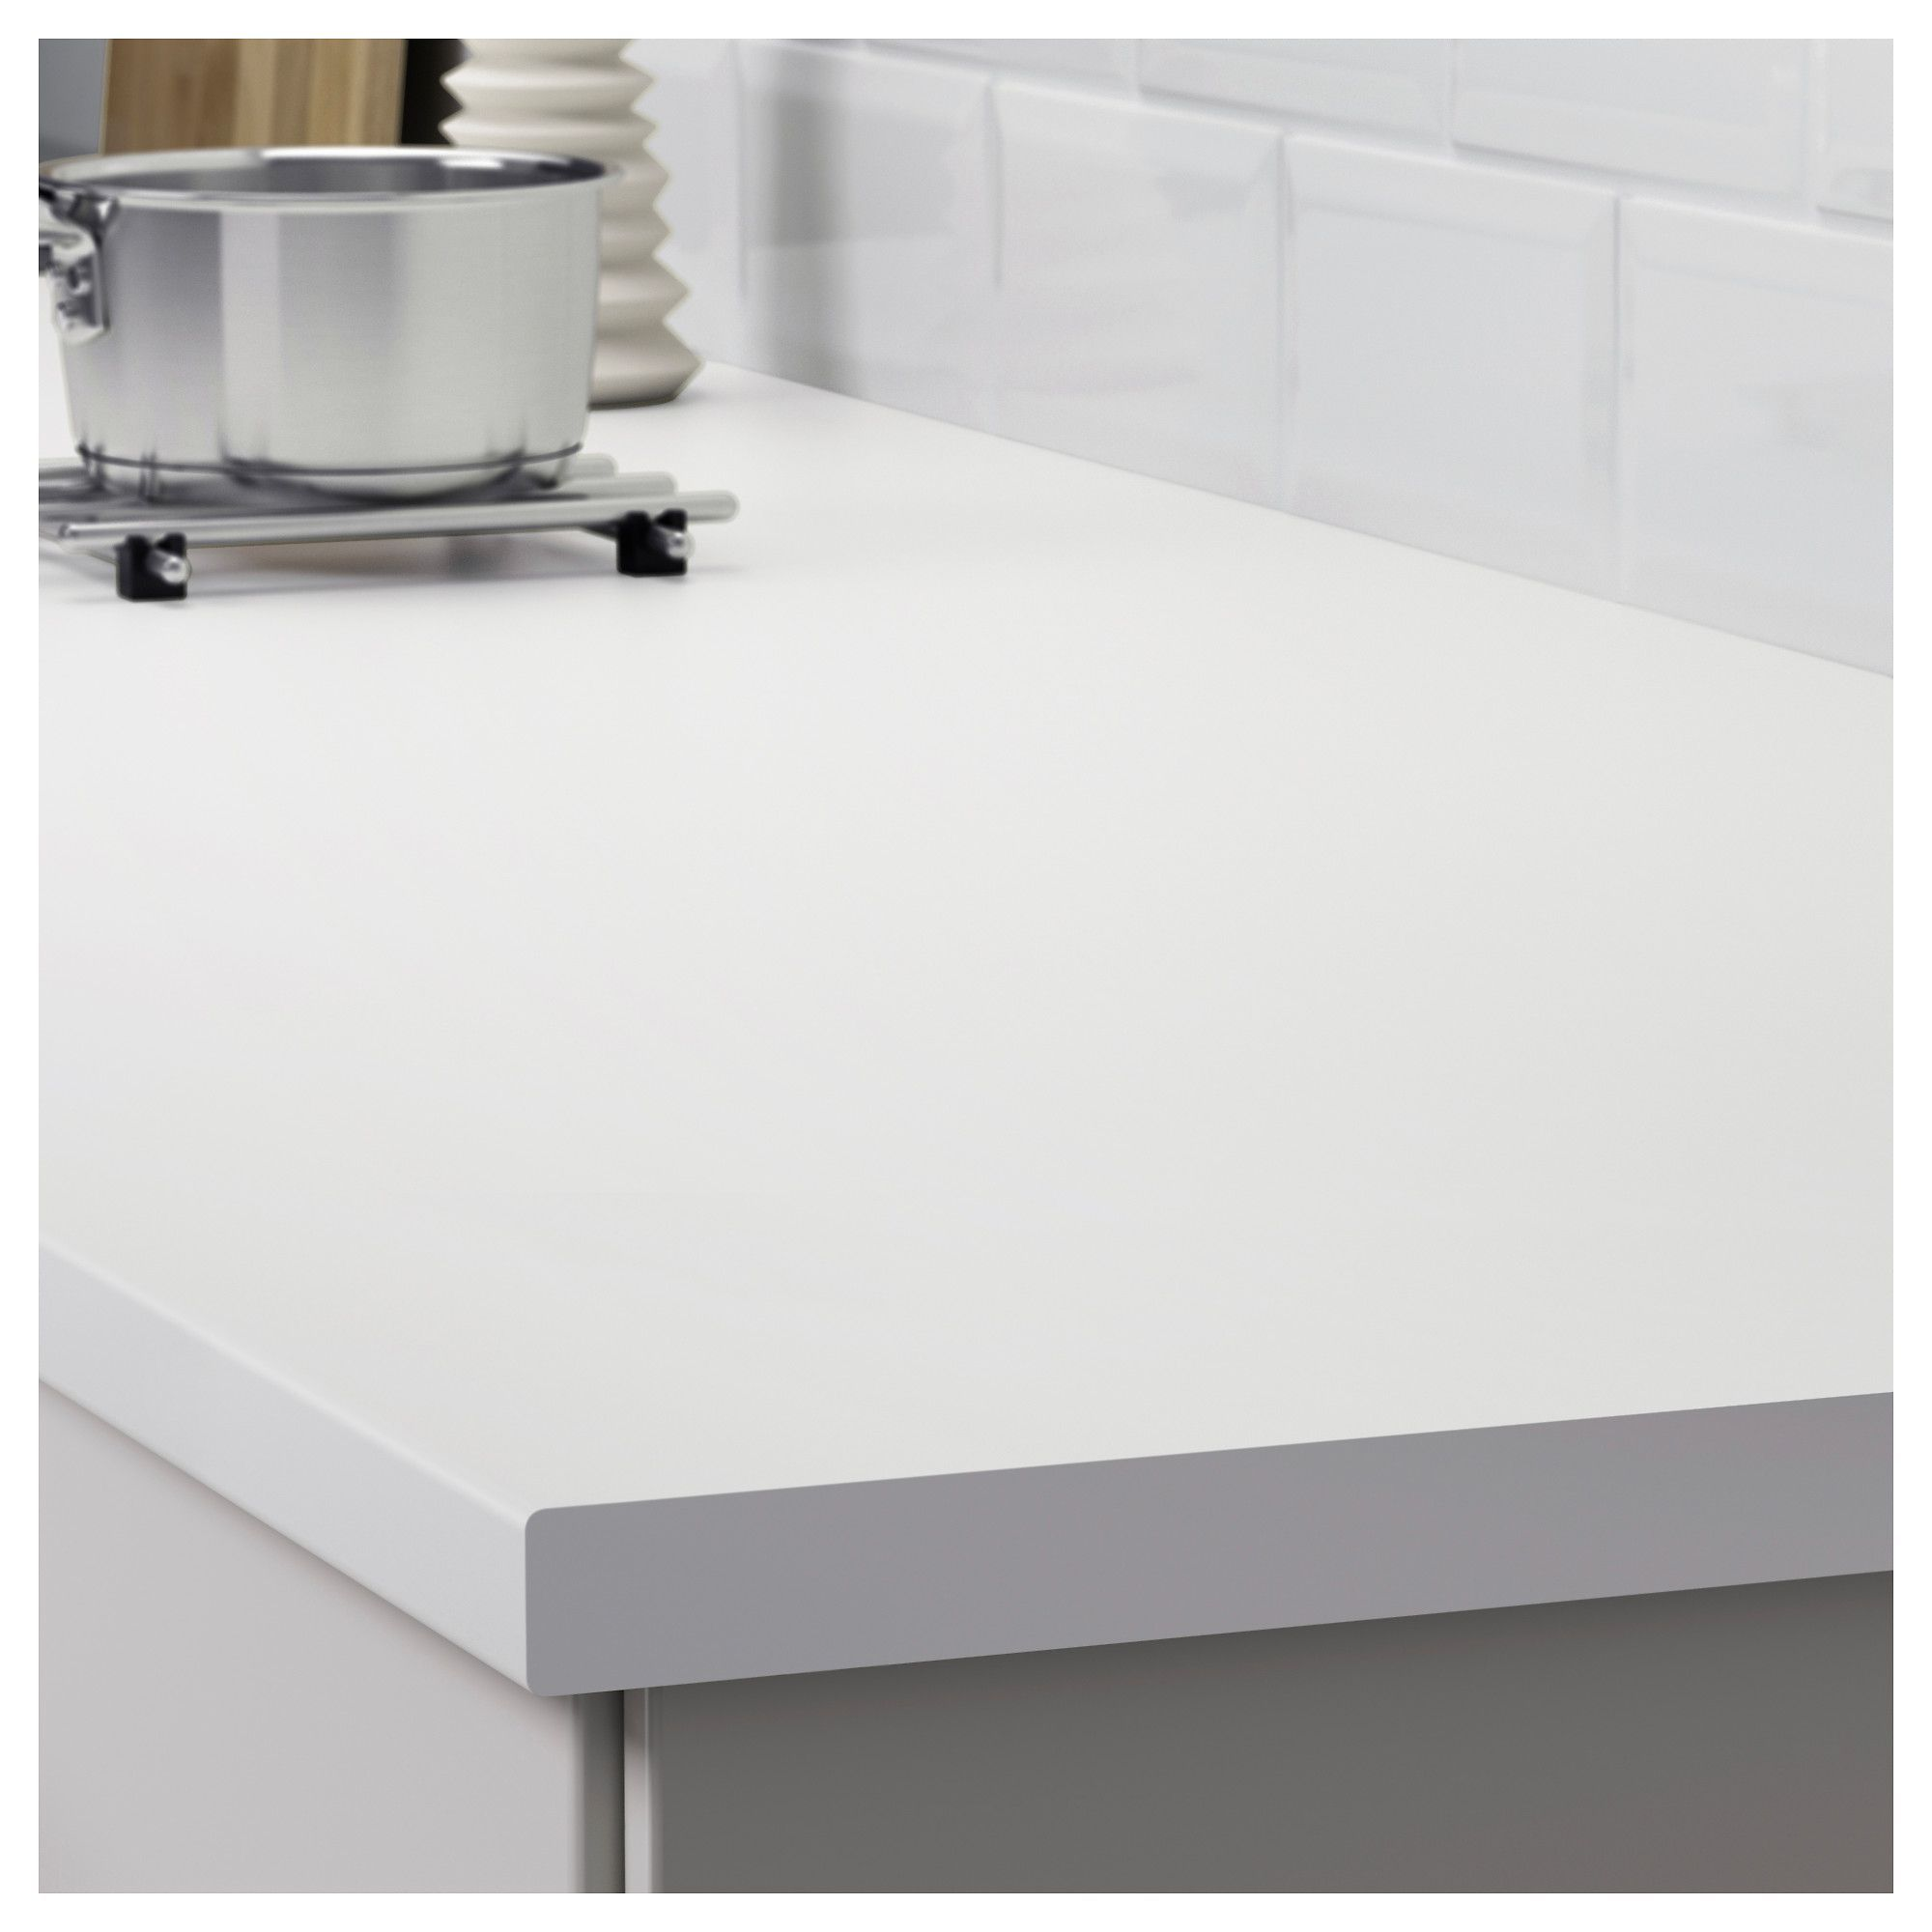 Countertops Ikea Lilltrask Countertop White Laminate Countertops Are Very Durable And With Images White Laminate Countertops Countertops Replacing Kitchen Countertops